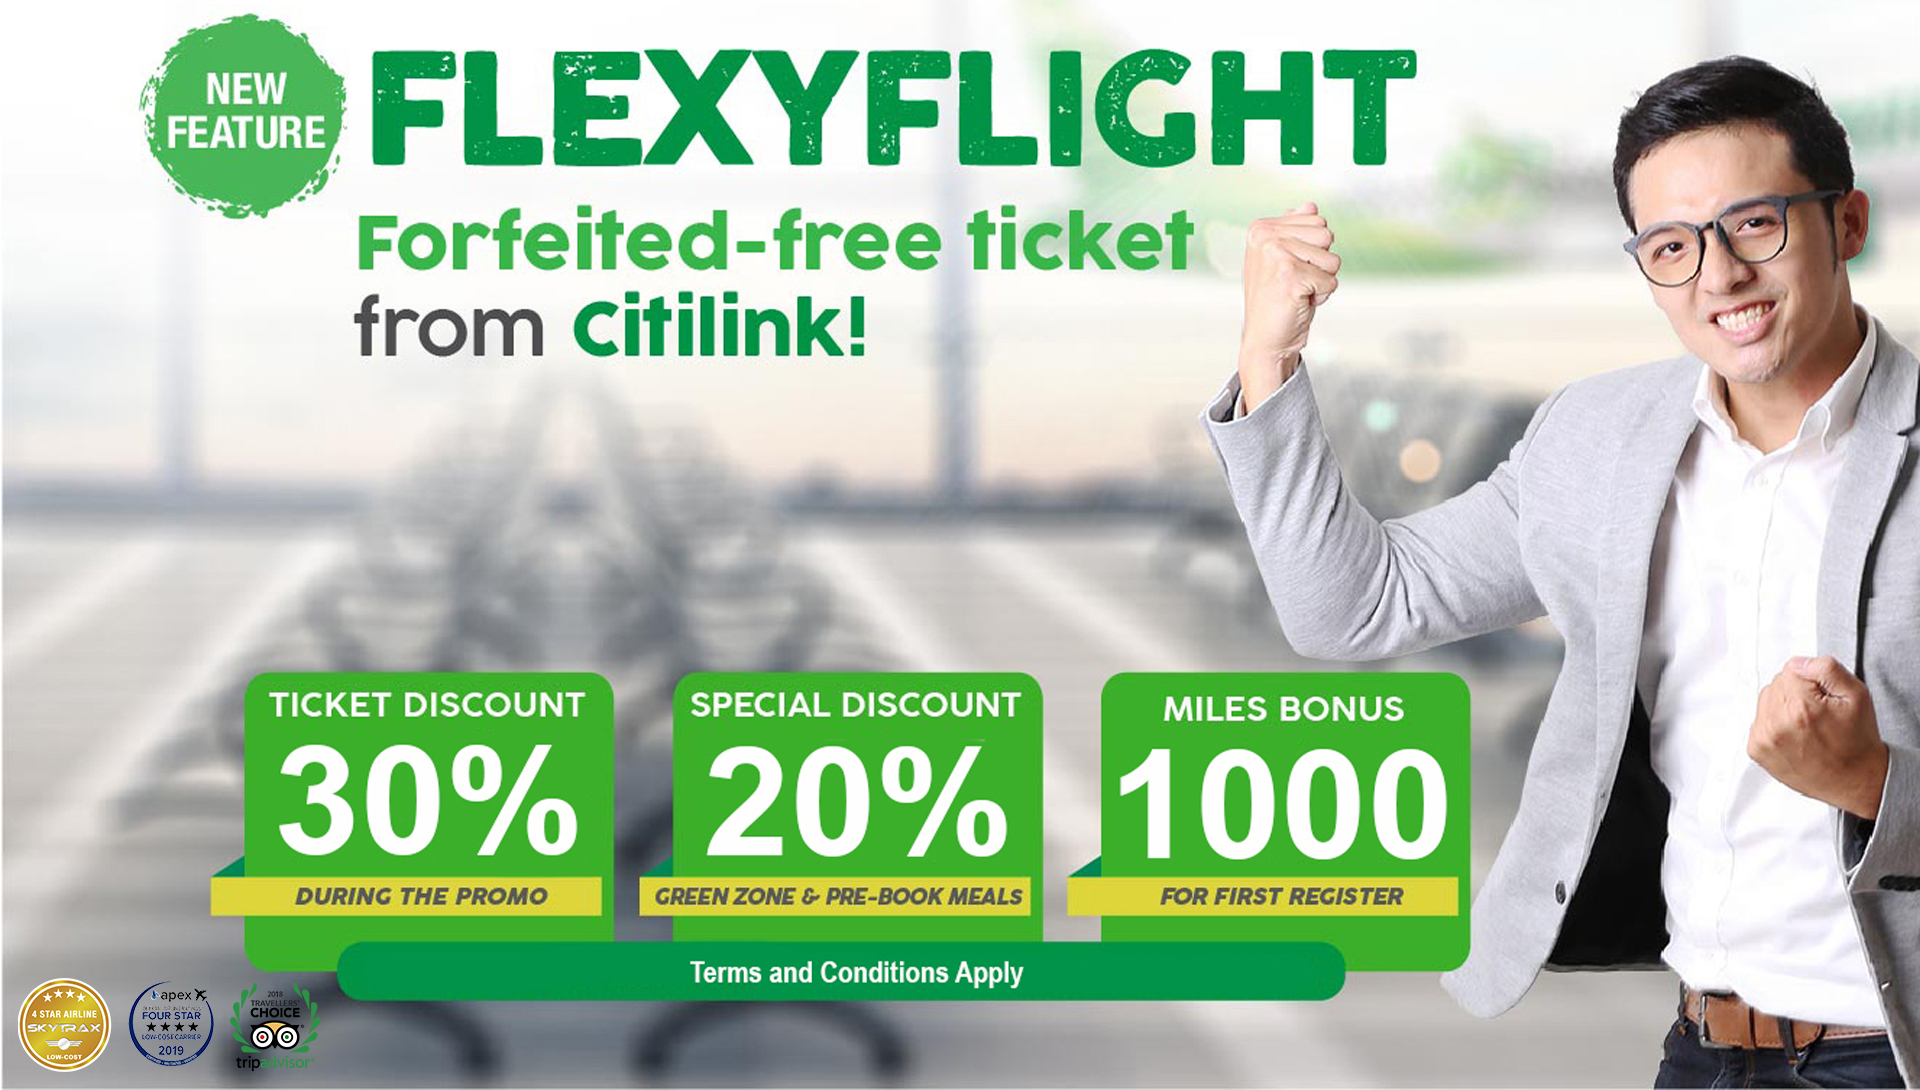 flexy-flight_landingpage_833x399-eng-rev-30-2